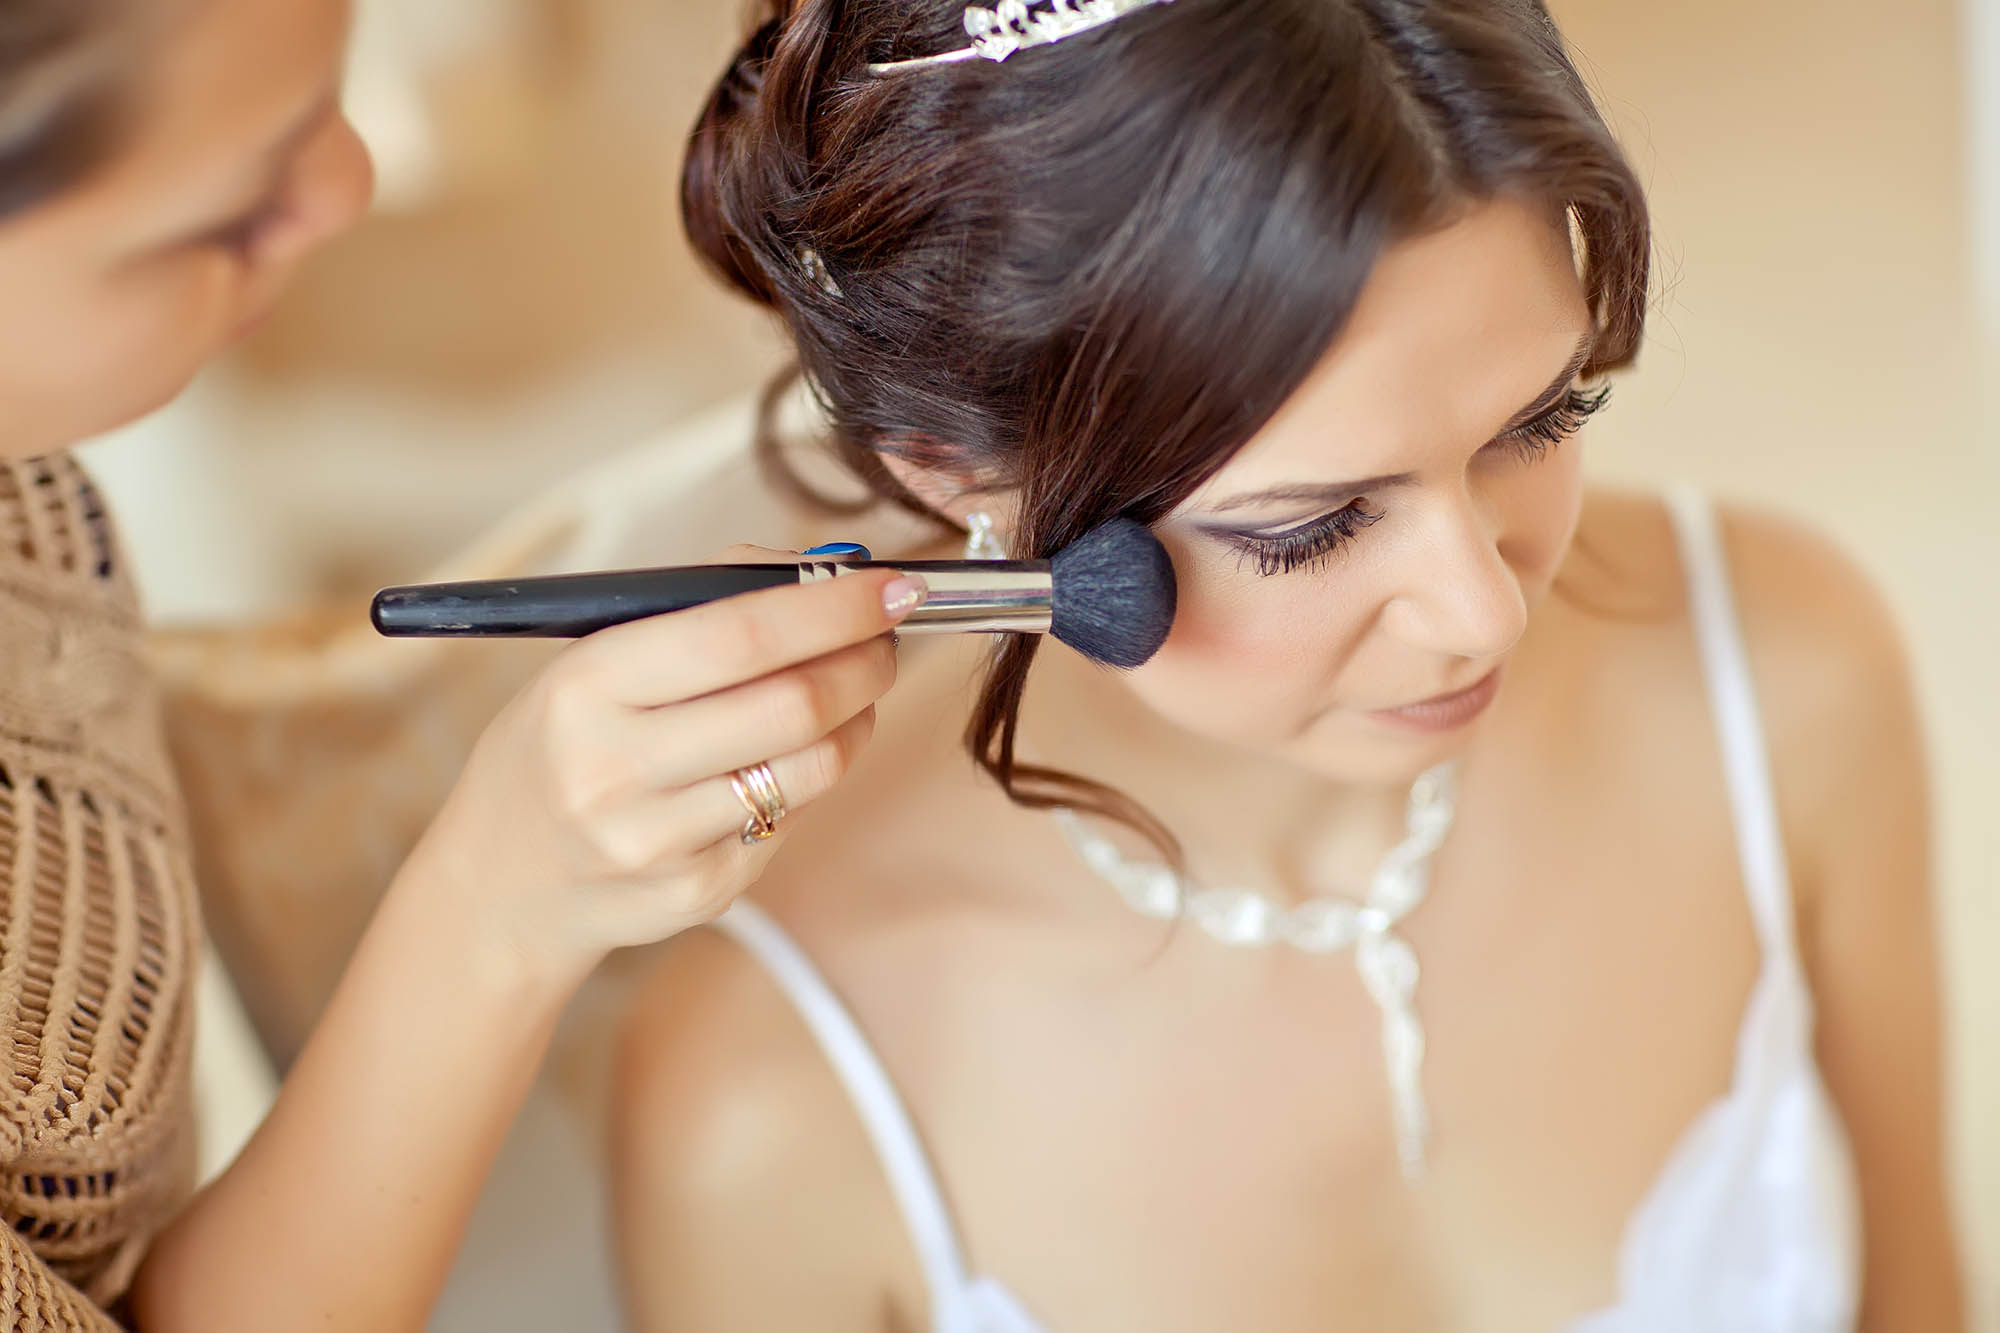 makeup bride on the wedding day